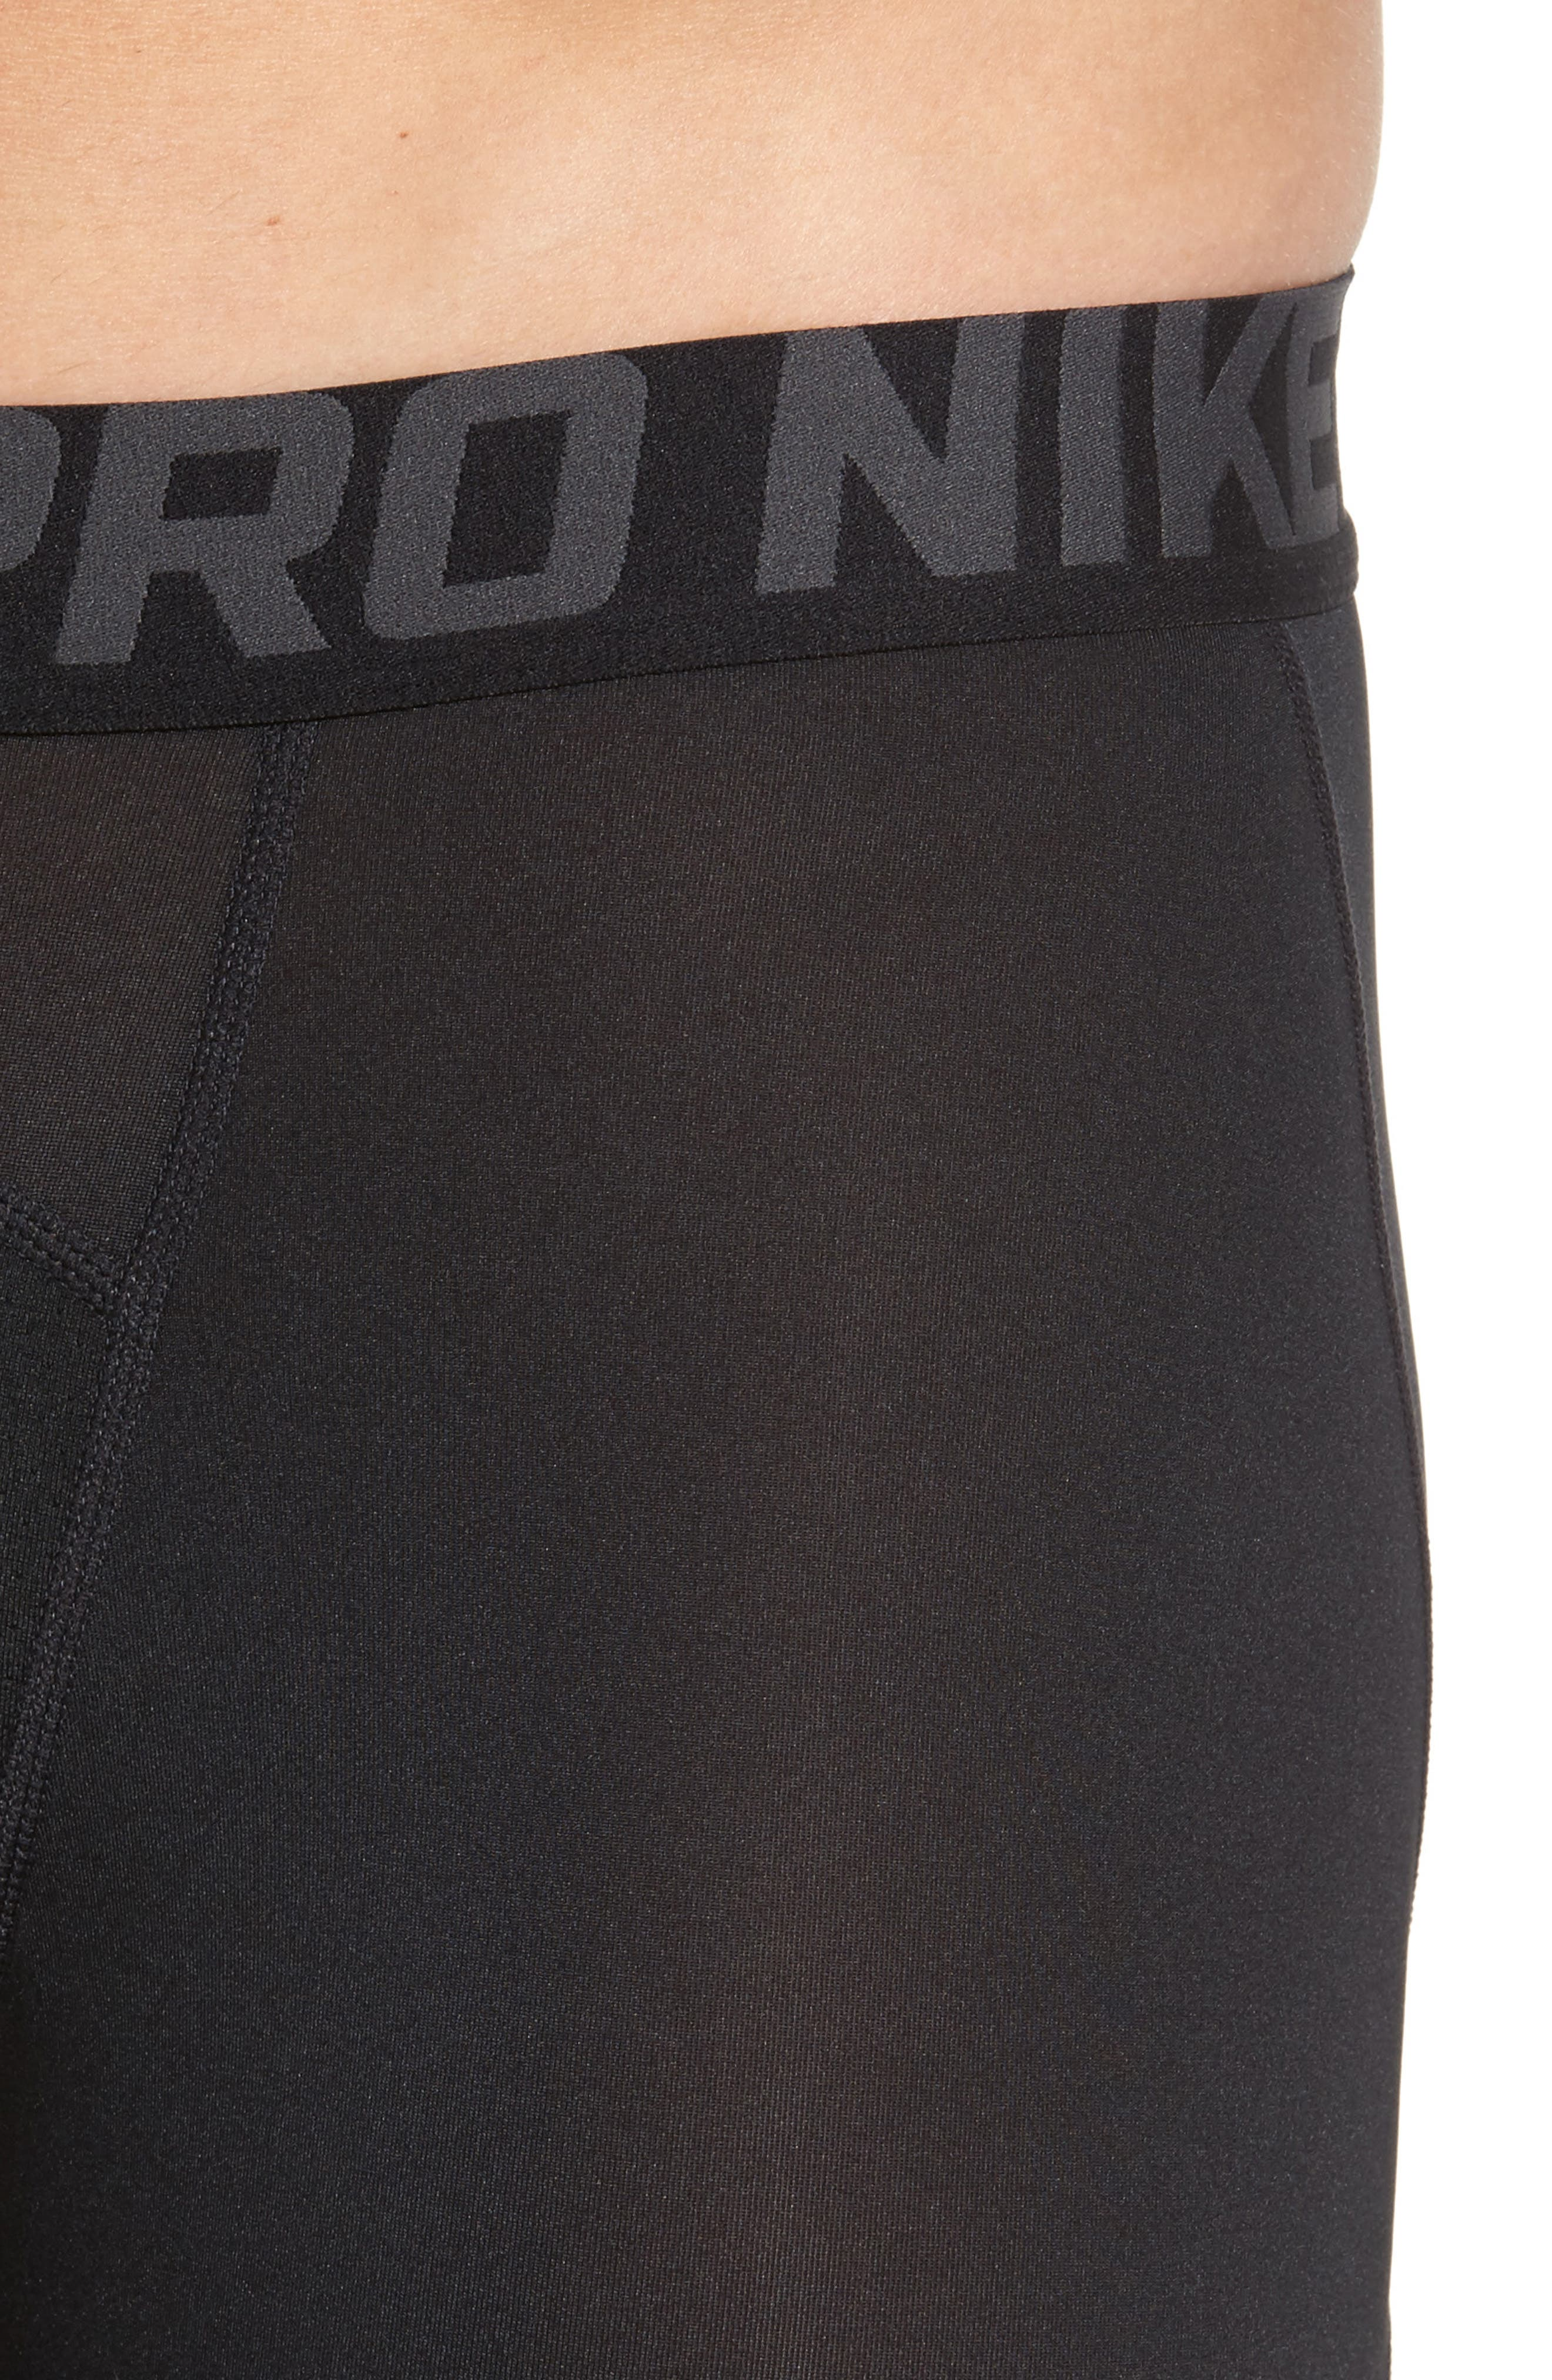 Pro Compression Shorts,                             Alternate thumbnail 4, color,                             Black/ Anthracite/ White